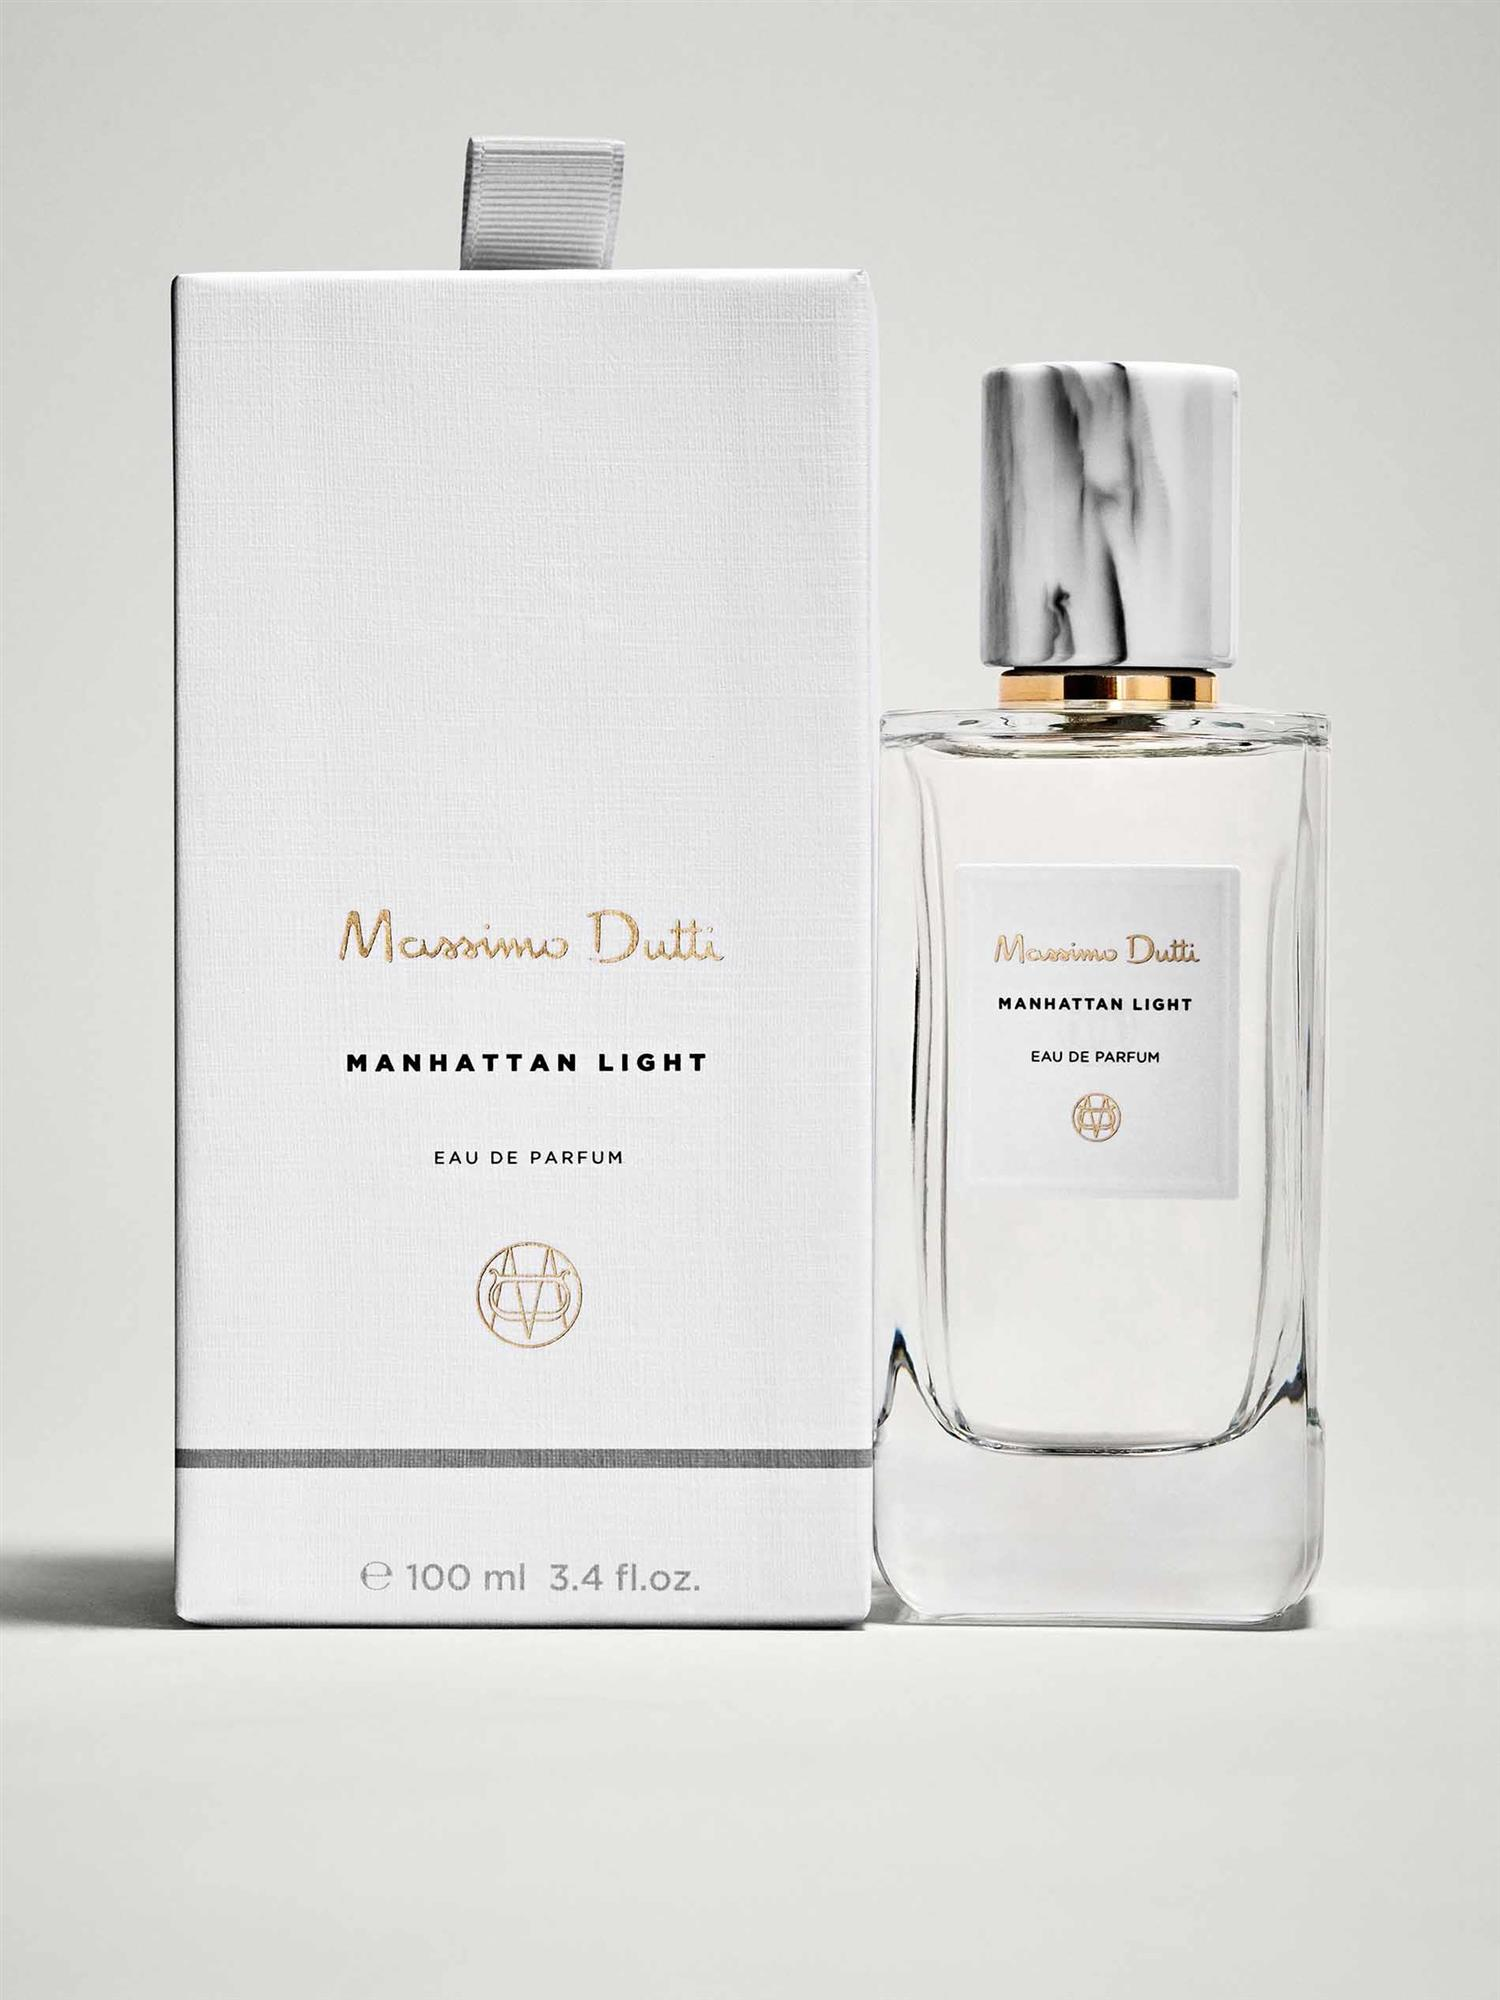 Massimo Dutti manhattan light perfume. Perfume Manhattan Light, de Massimo Dutti